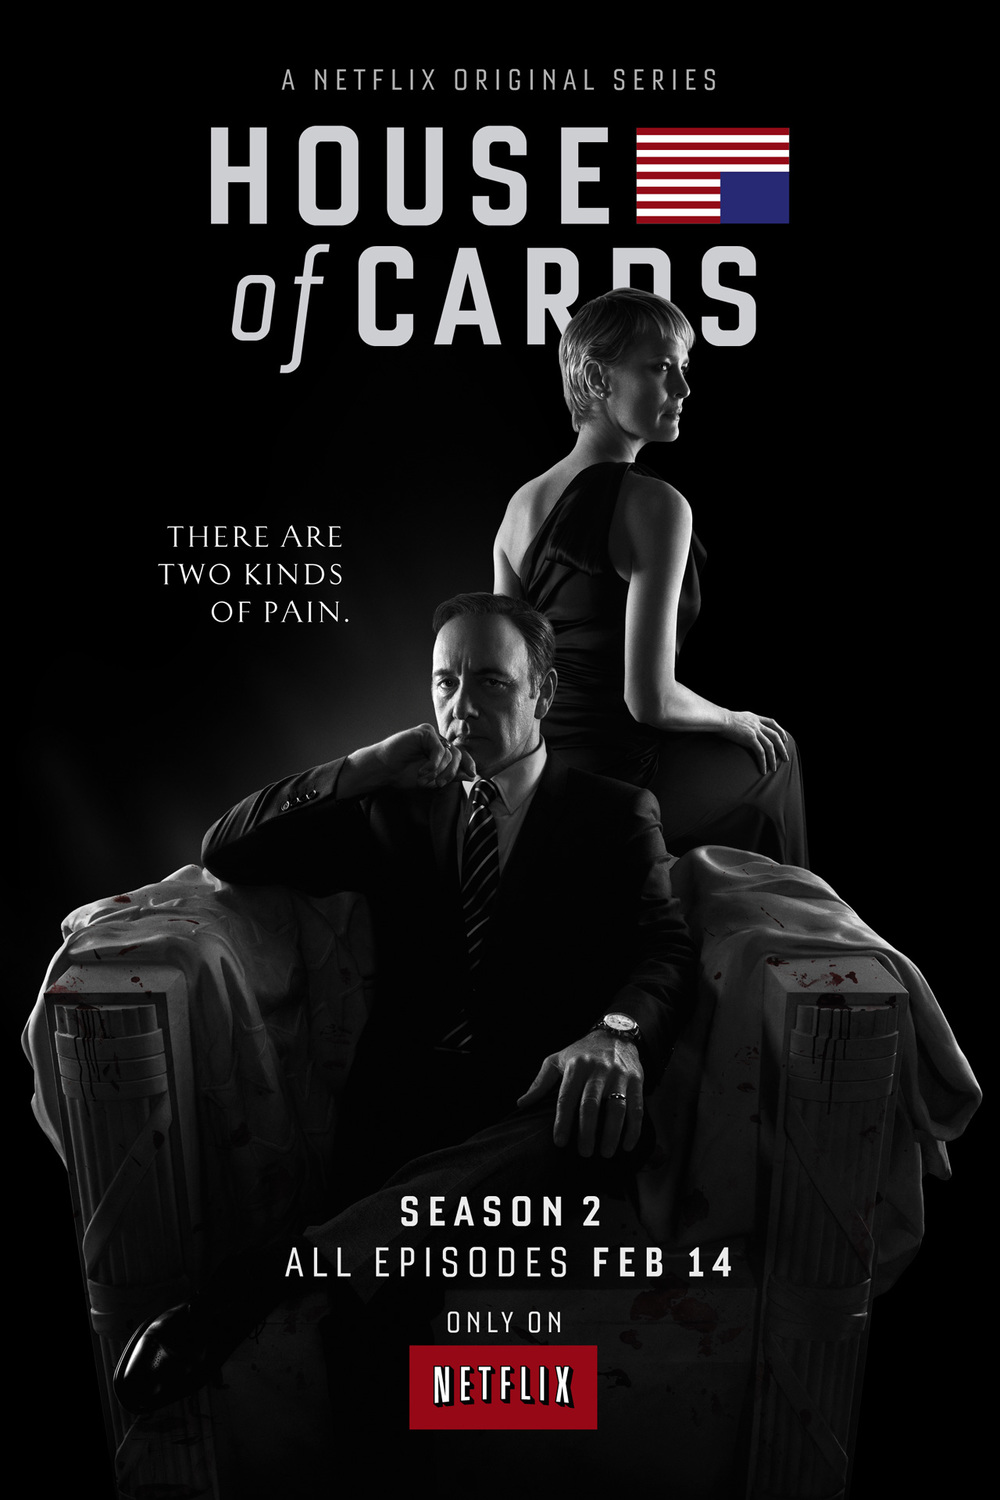 House of Cards Season 2 began again on February 14, 2014